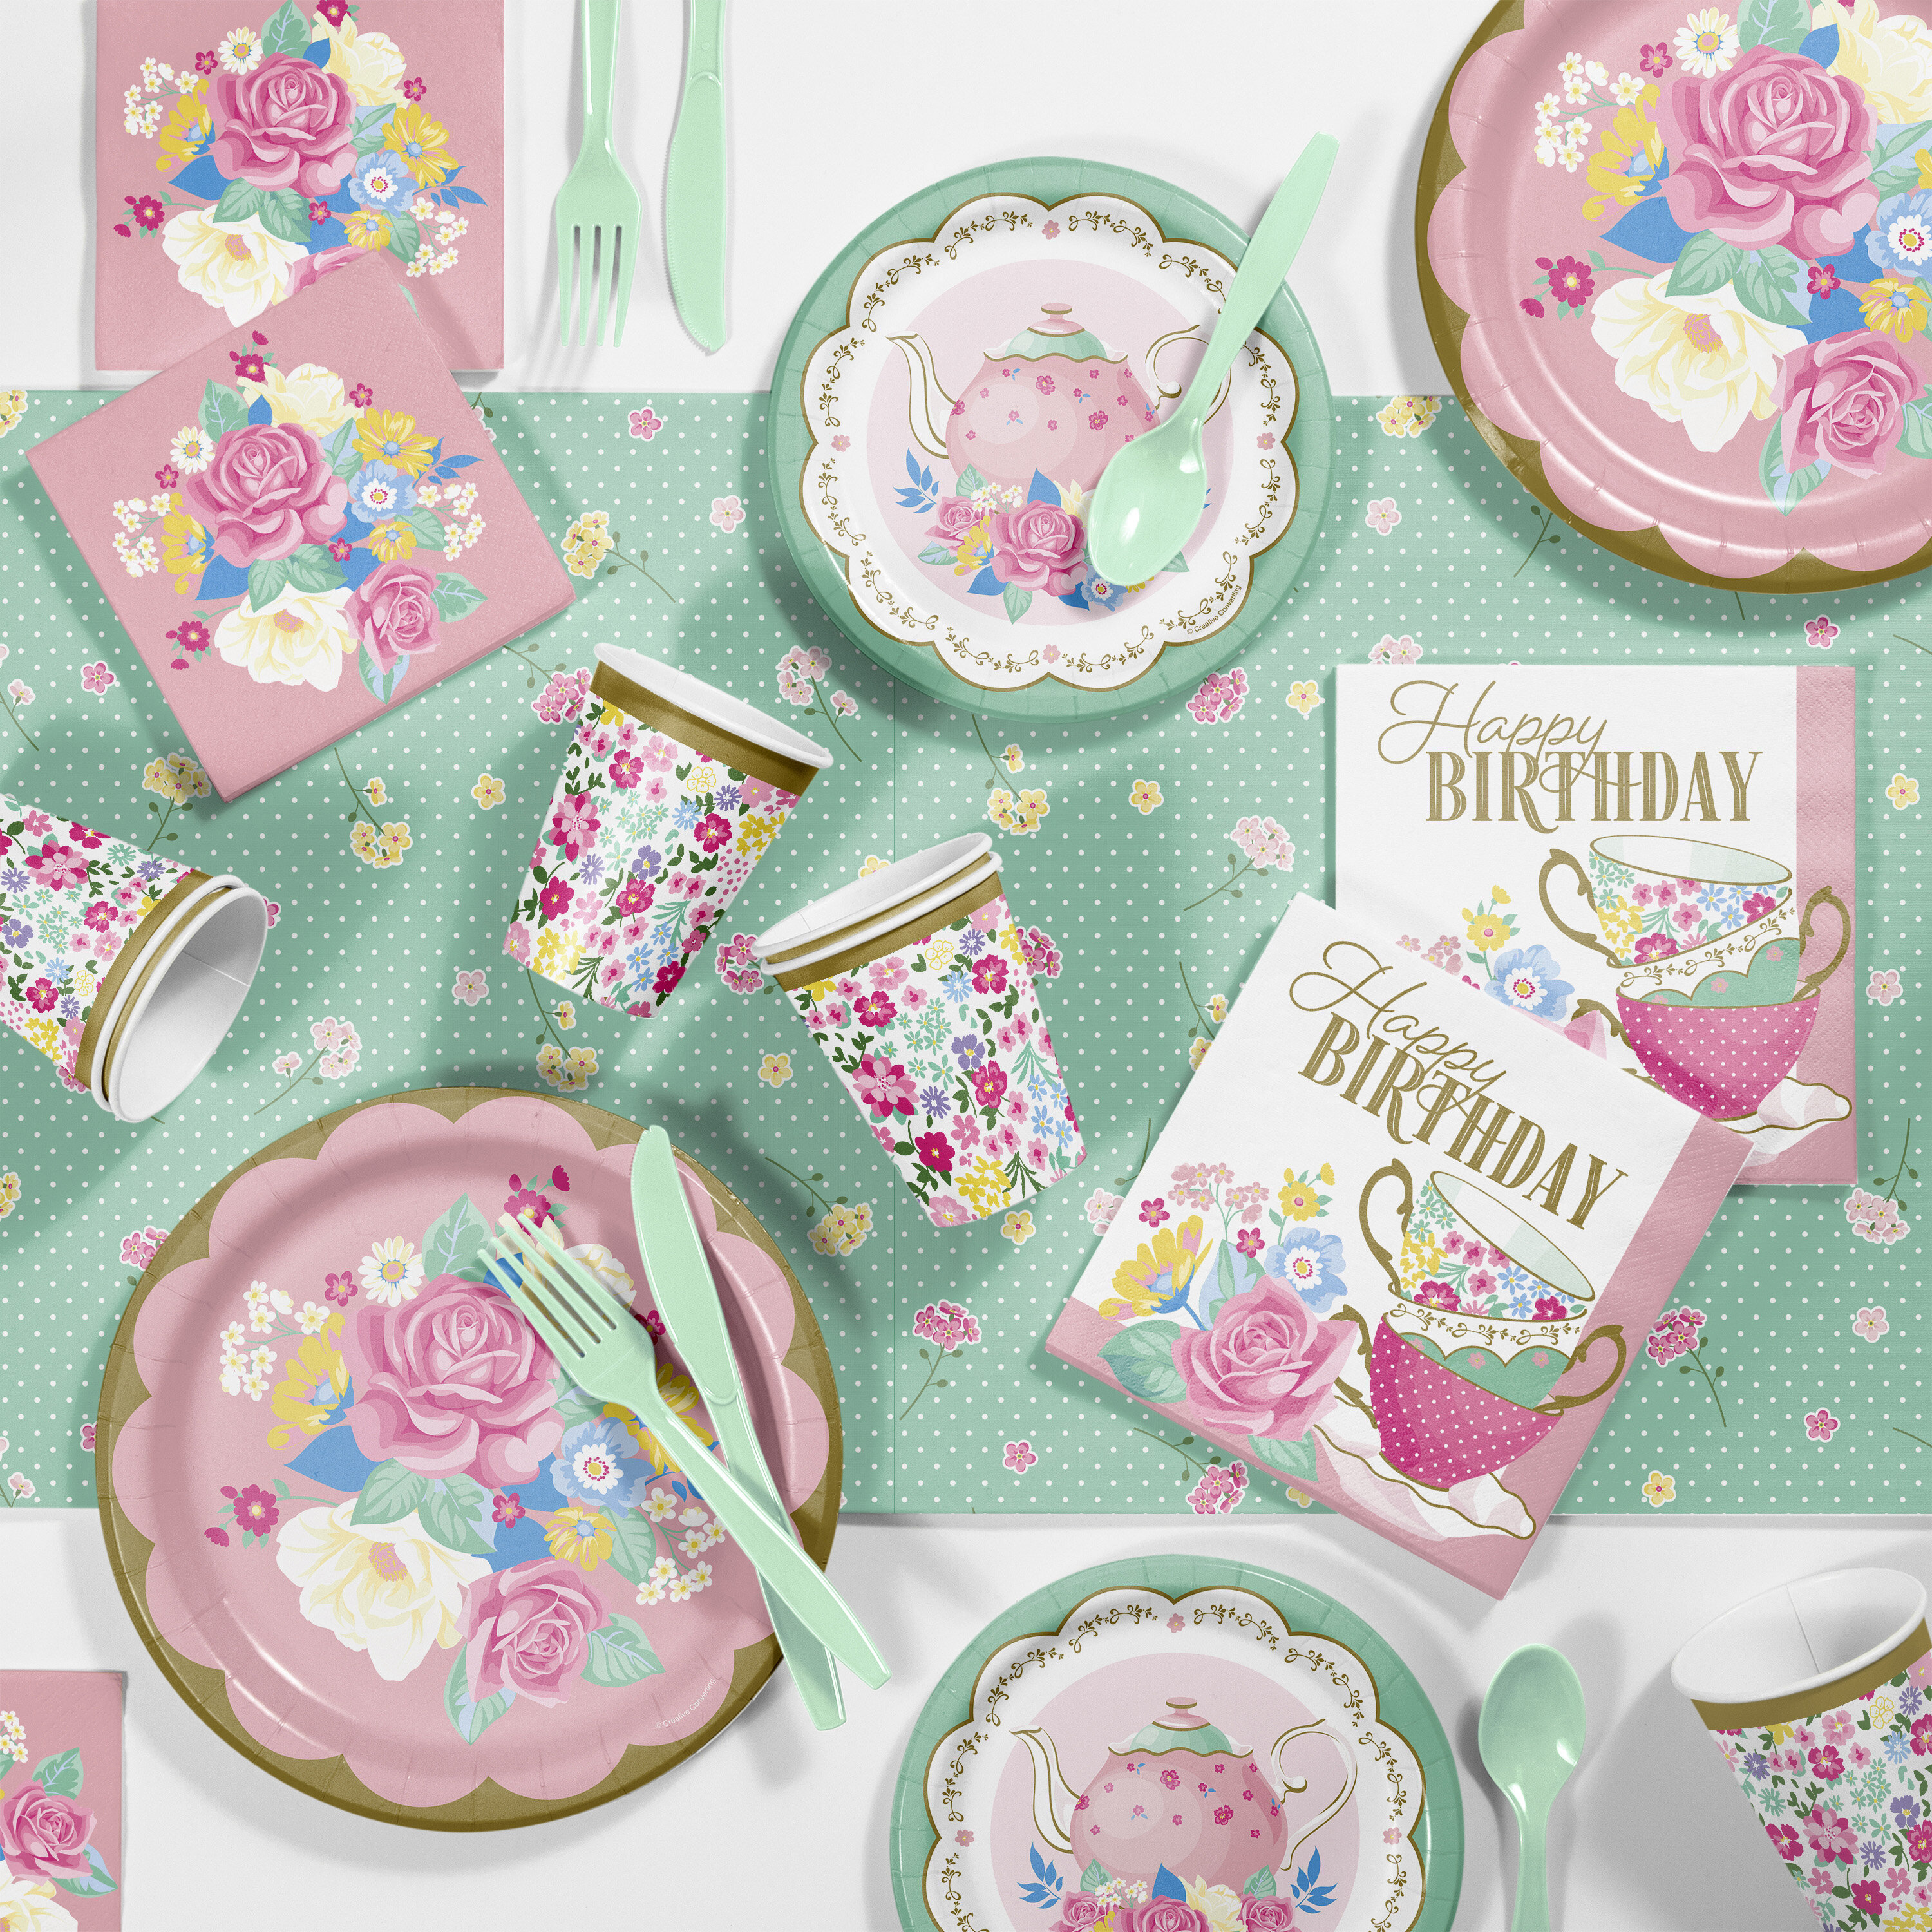 Astonishing Creative Converting Floral Tea Birthday Party Supplies Kit Guests Funny Birthday Cards Online Alyptdamsfinfo